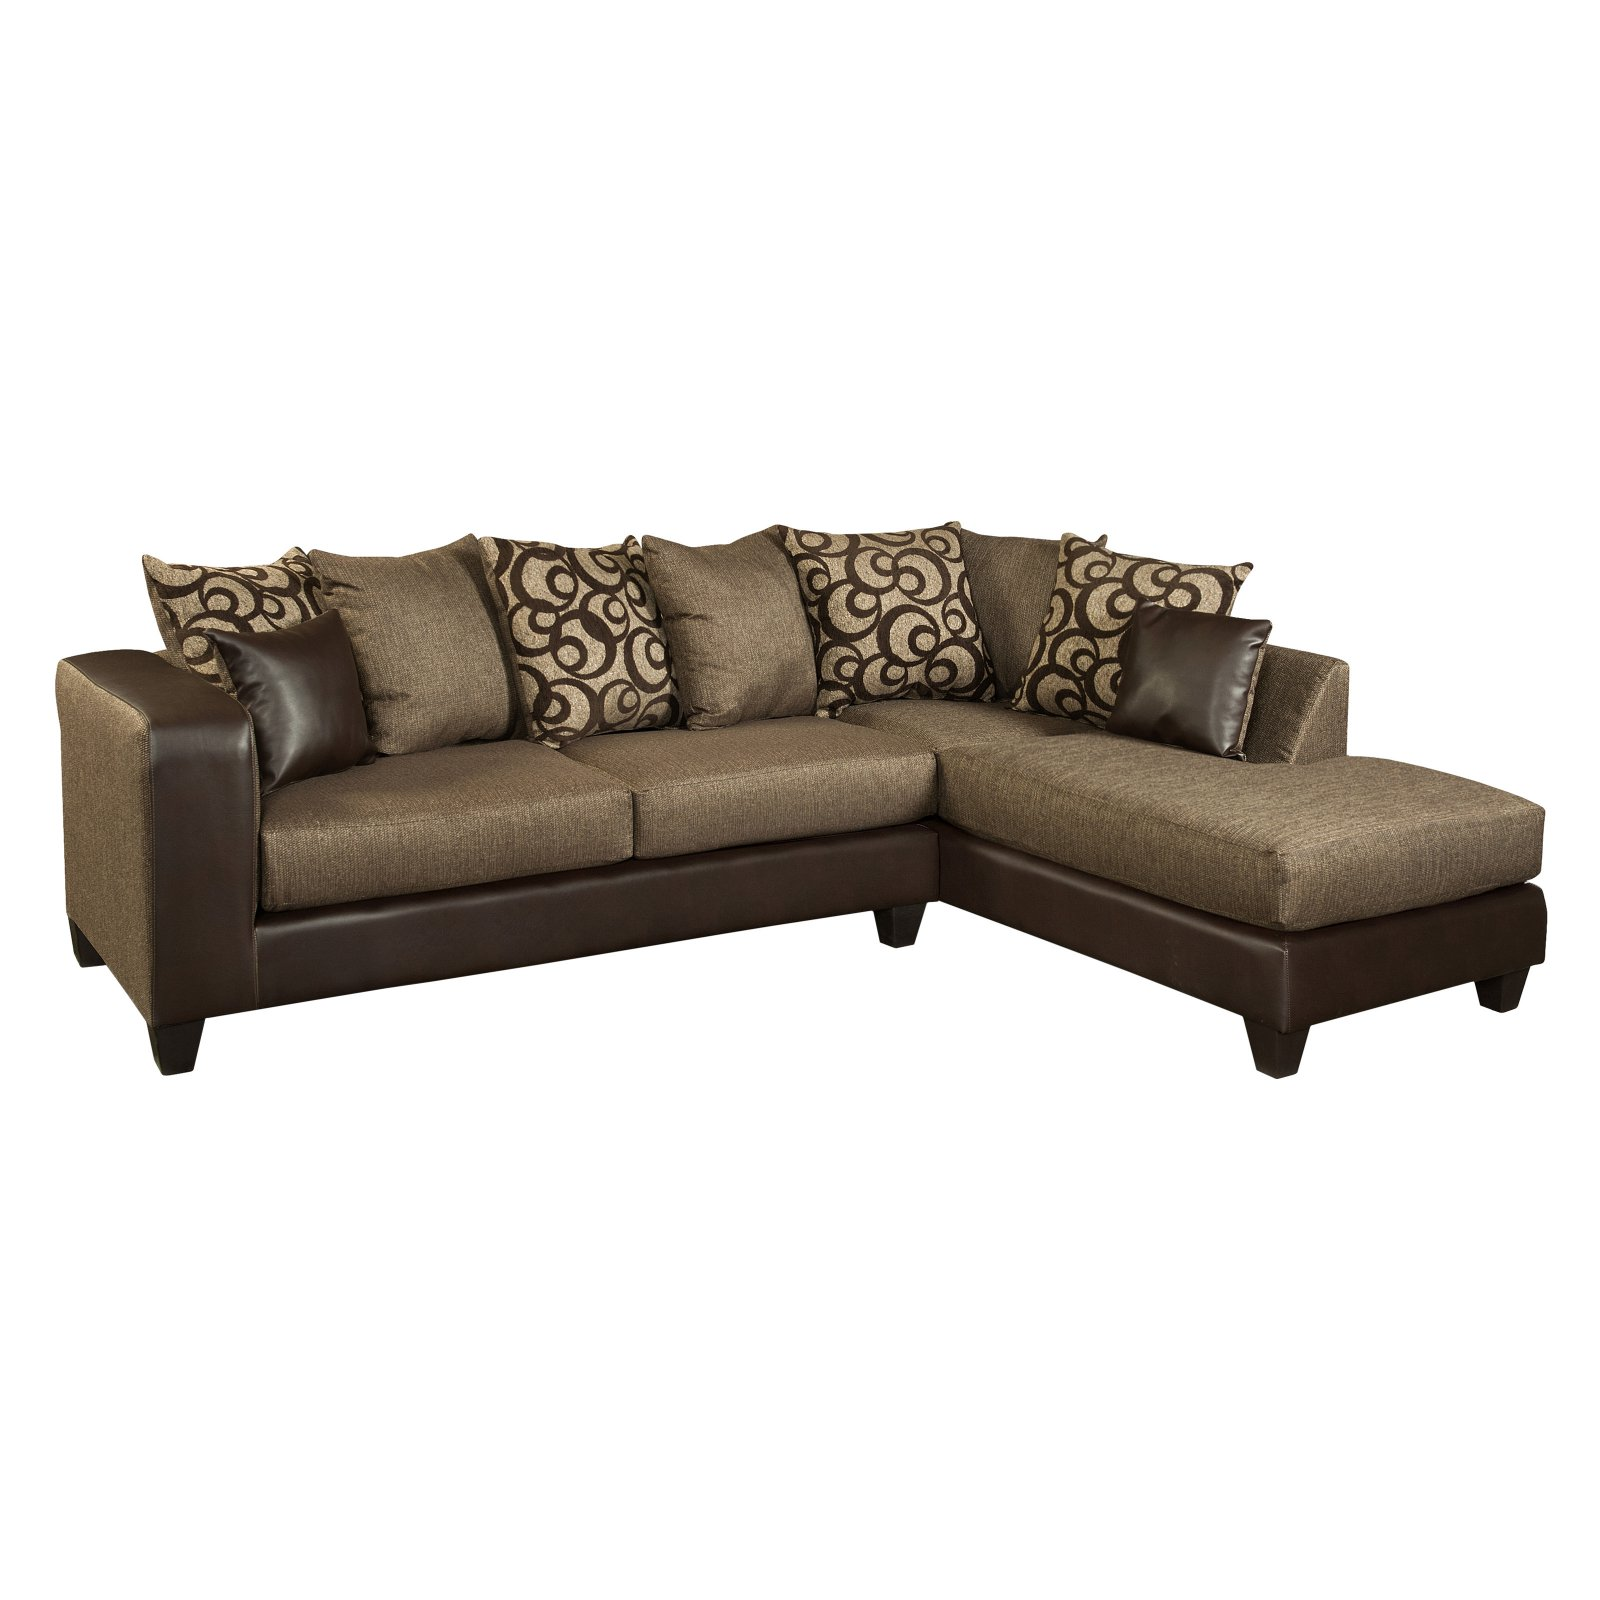 Flash Furniture Riverstone Object Chenille Sectional Sofa